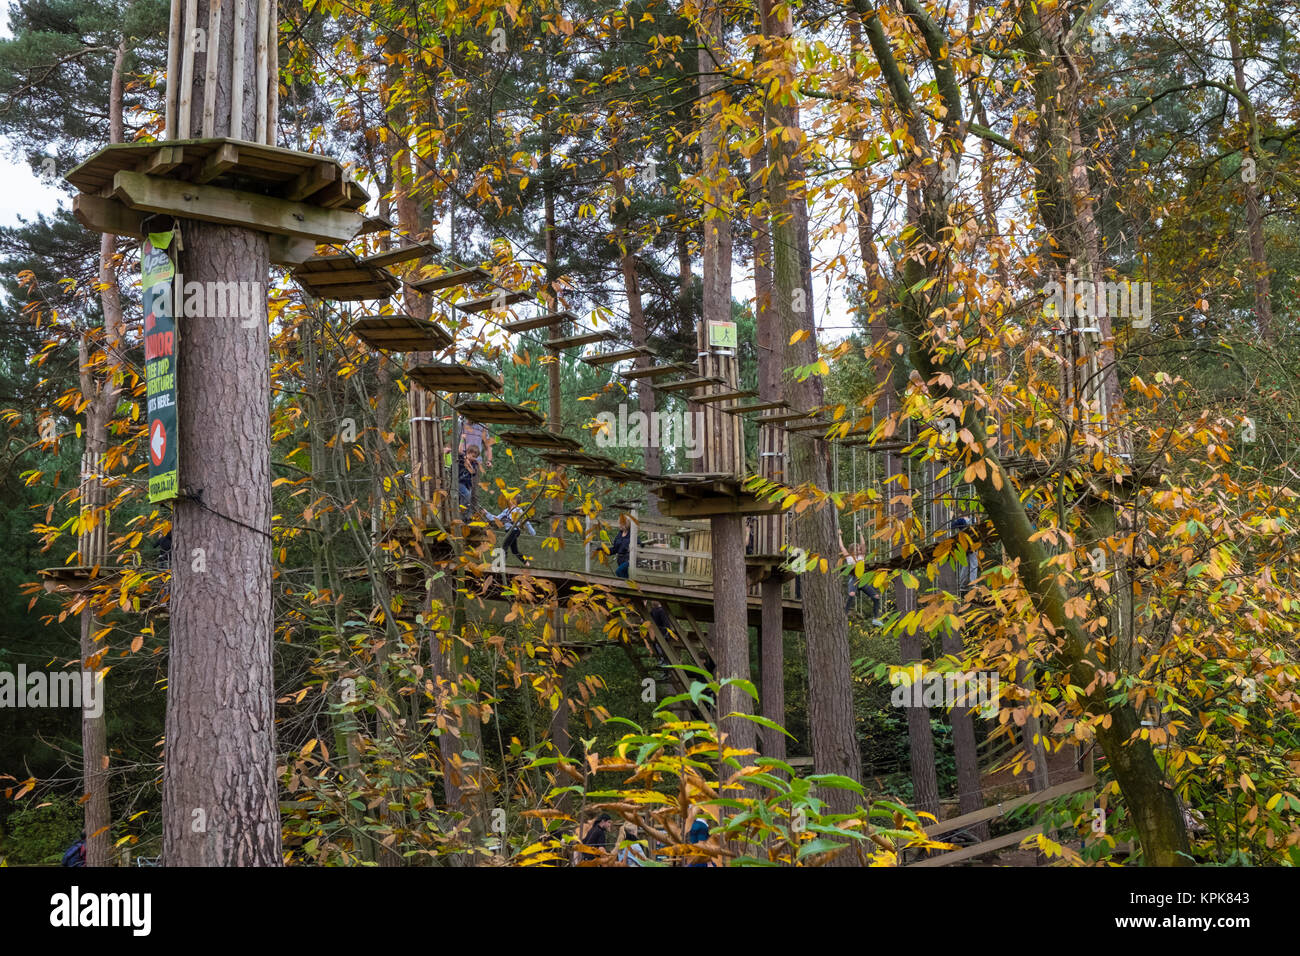 Go ape climbing at the Bedgebury National Pinetum at Bedgebury, Kent - Stock Image